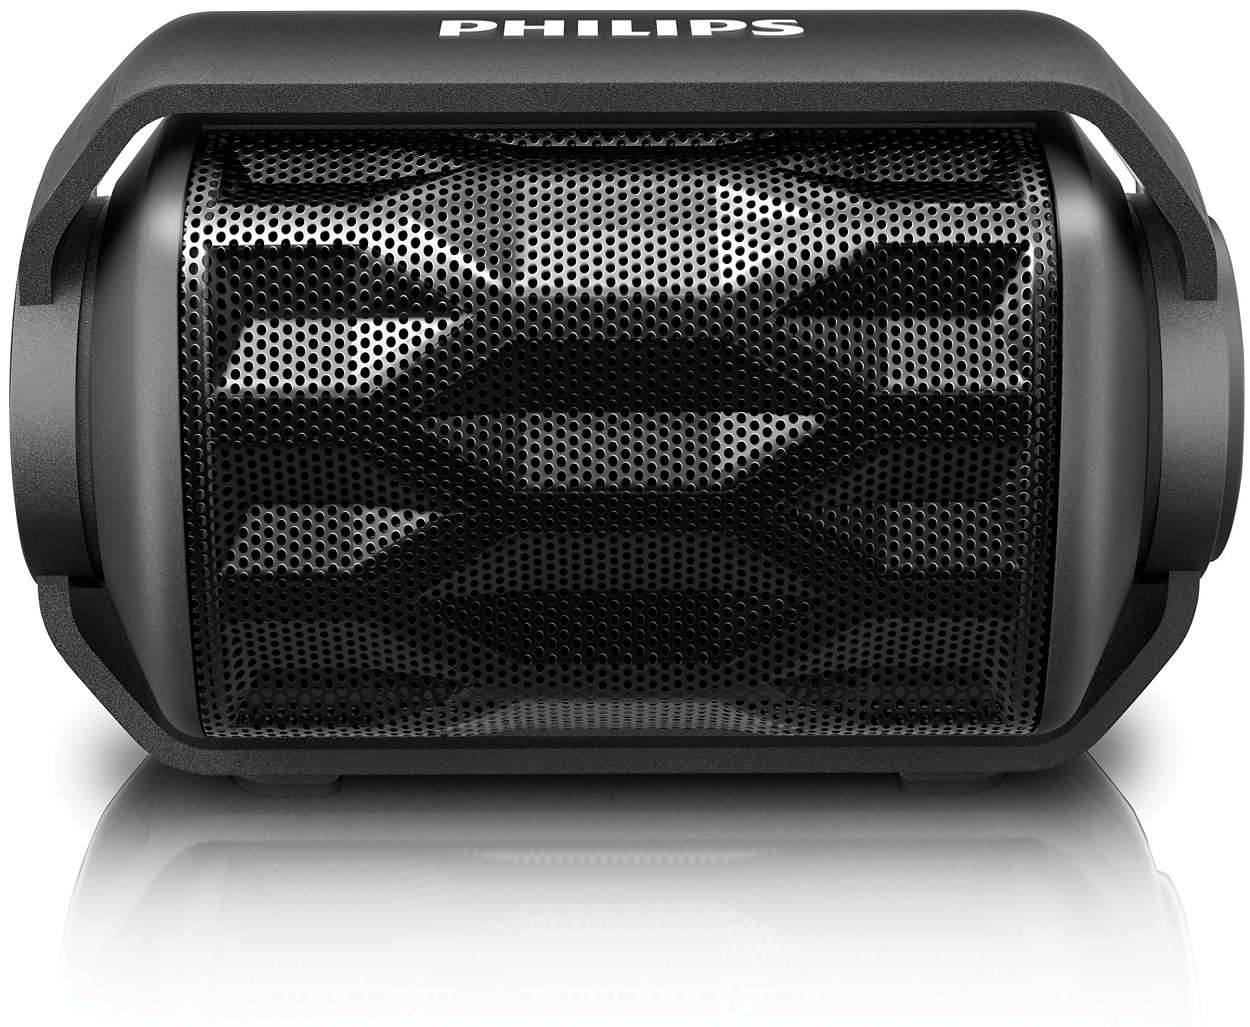 Wireless Portable Speaker Bt2200b 27 Philips Mini Bluetooth A That Is As Adventurous You